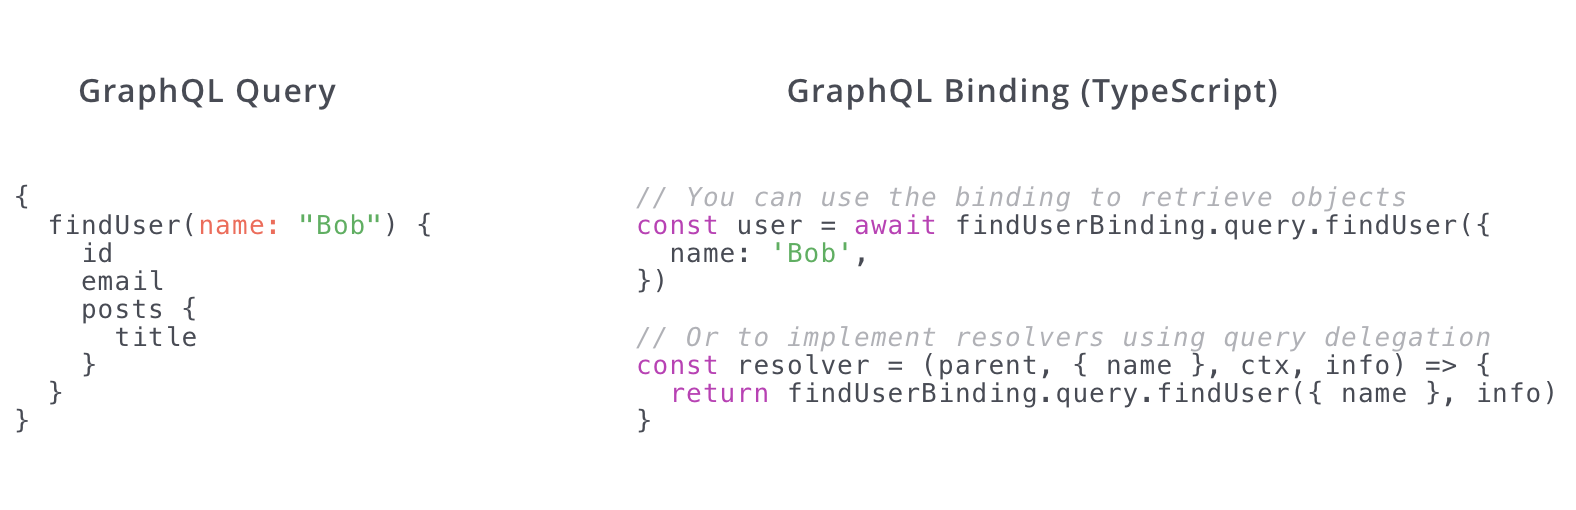 When using a typed language, a GraphQL binding maps the GraphQL API types to your programming language.